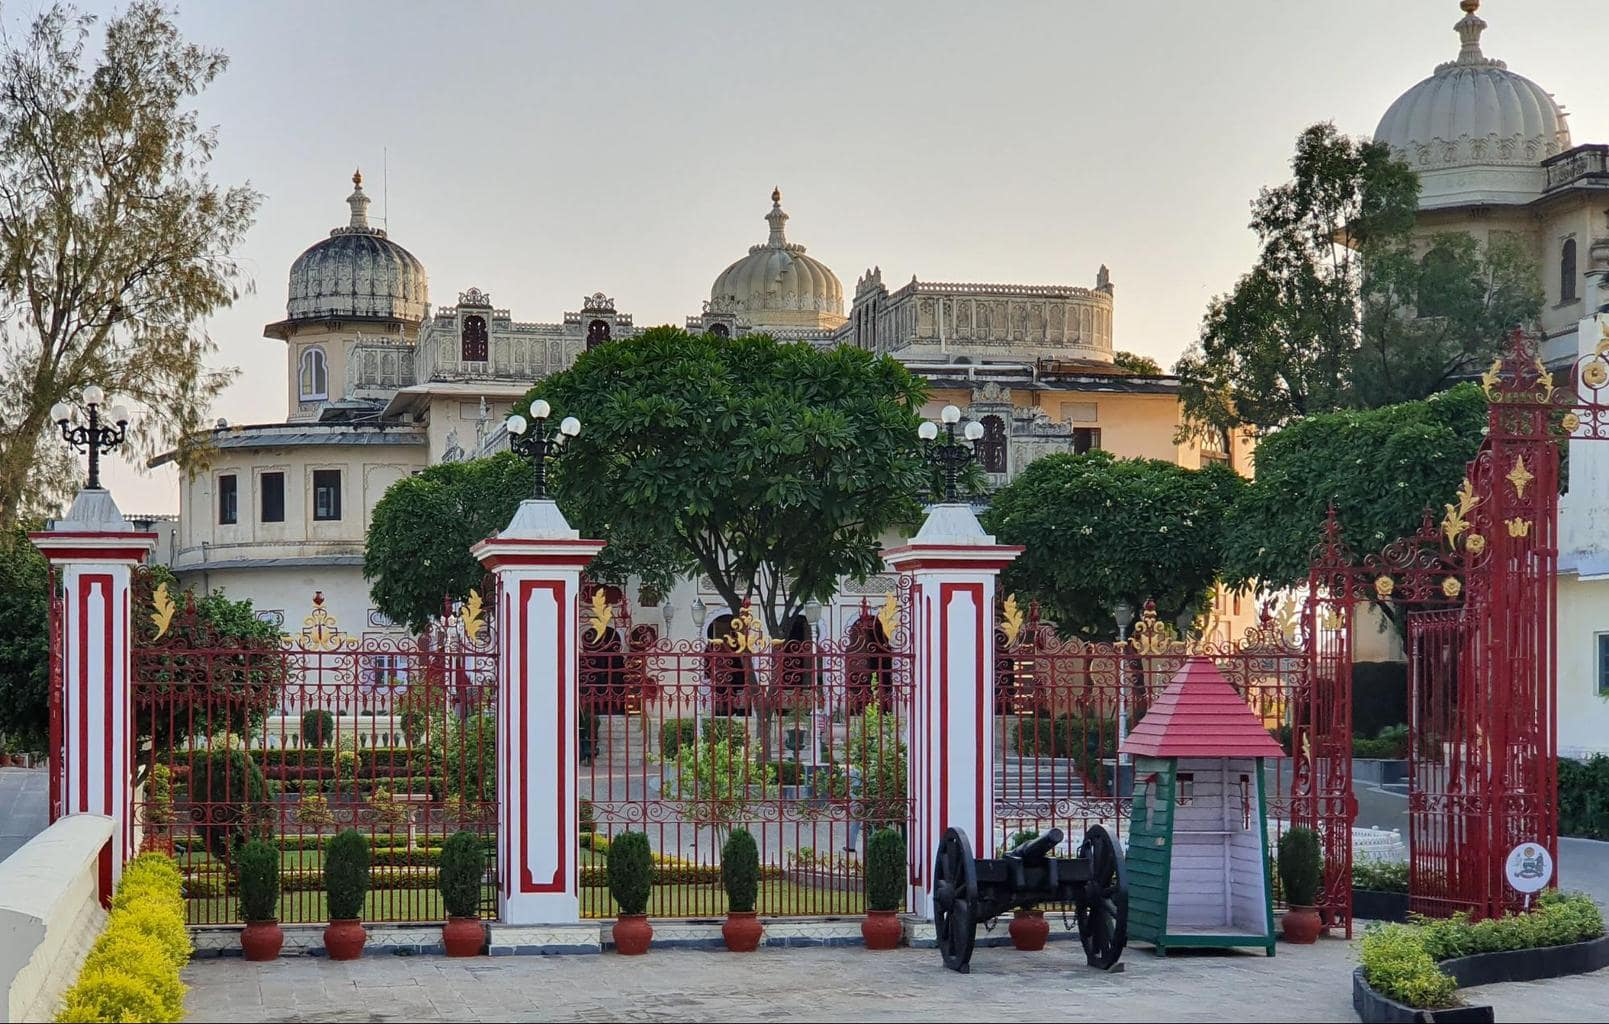 Shambu Niwas, part of the City palace and adjacent to Shiv Niwas Palace